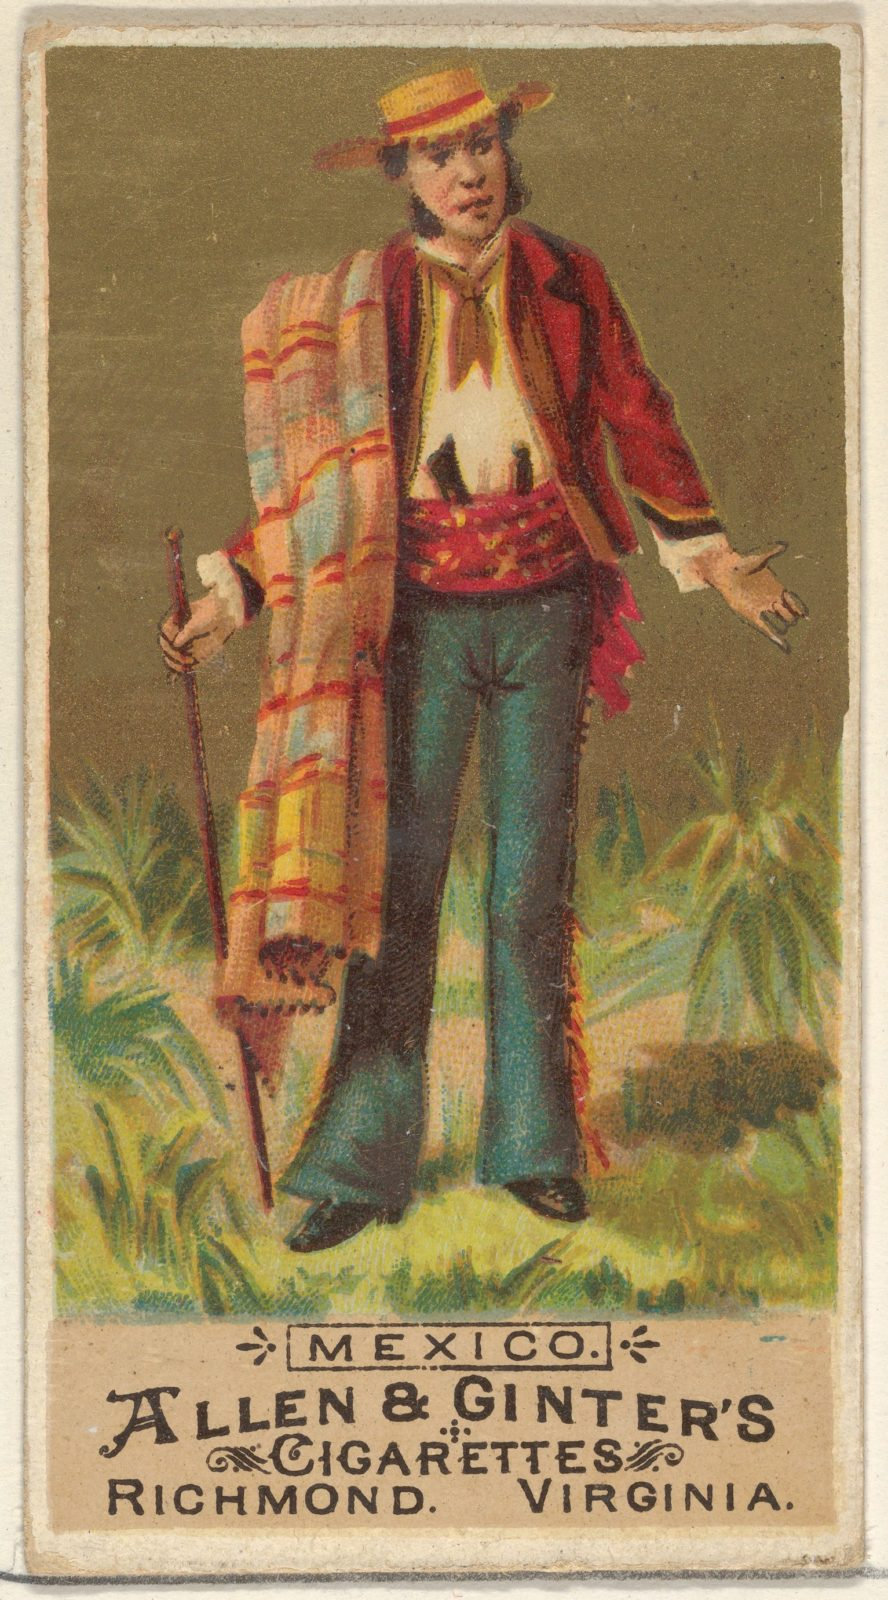 Mexico, from the Natives in Costume series (N16) for Allen & Ginter Cigarettes Brands